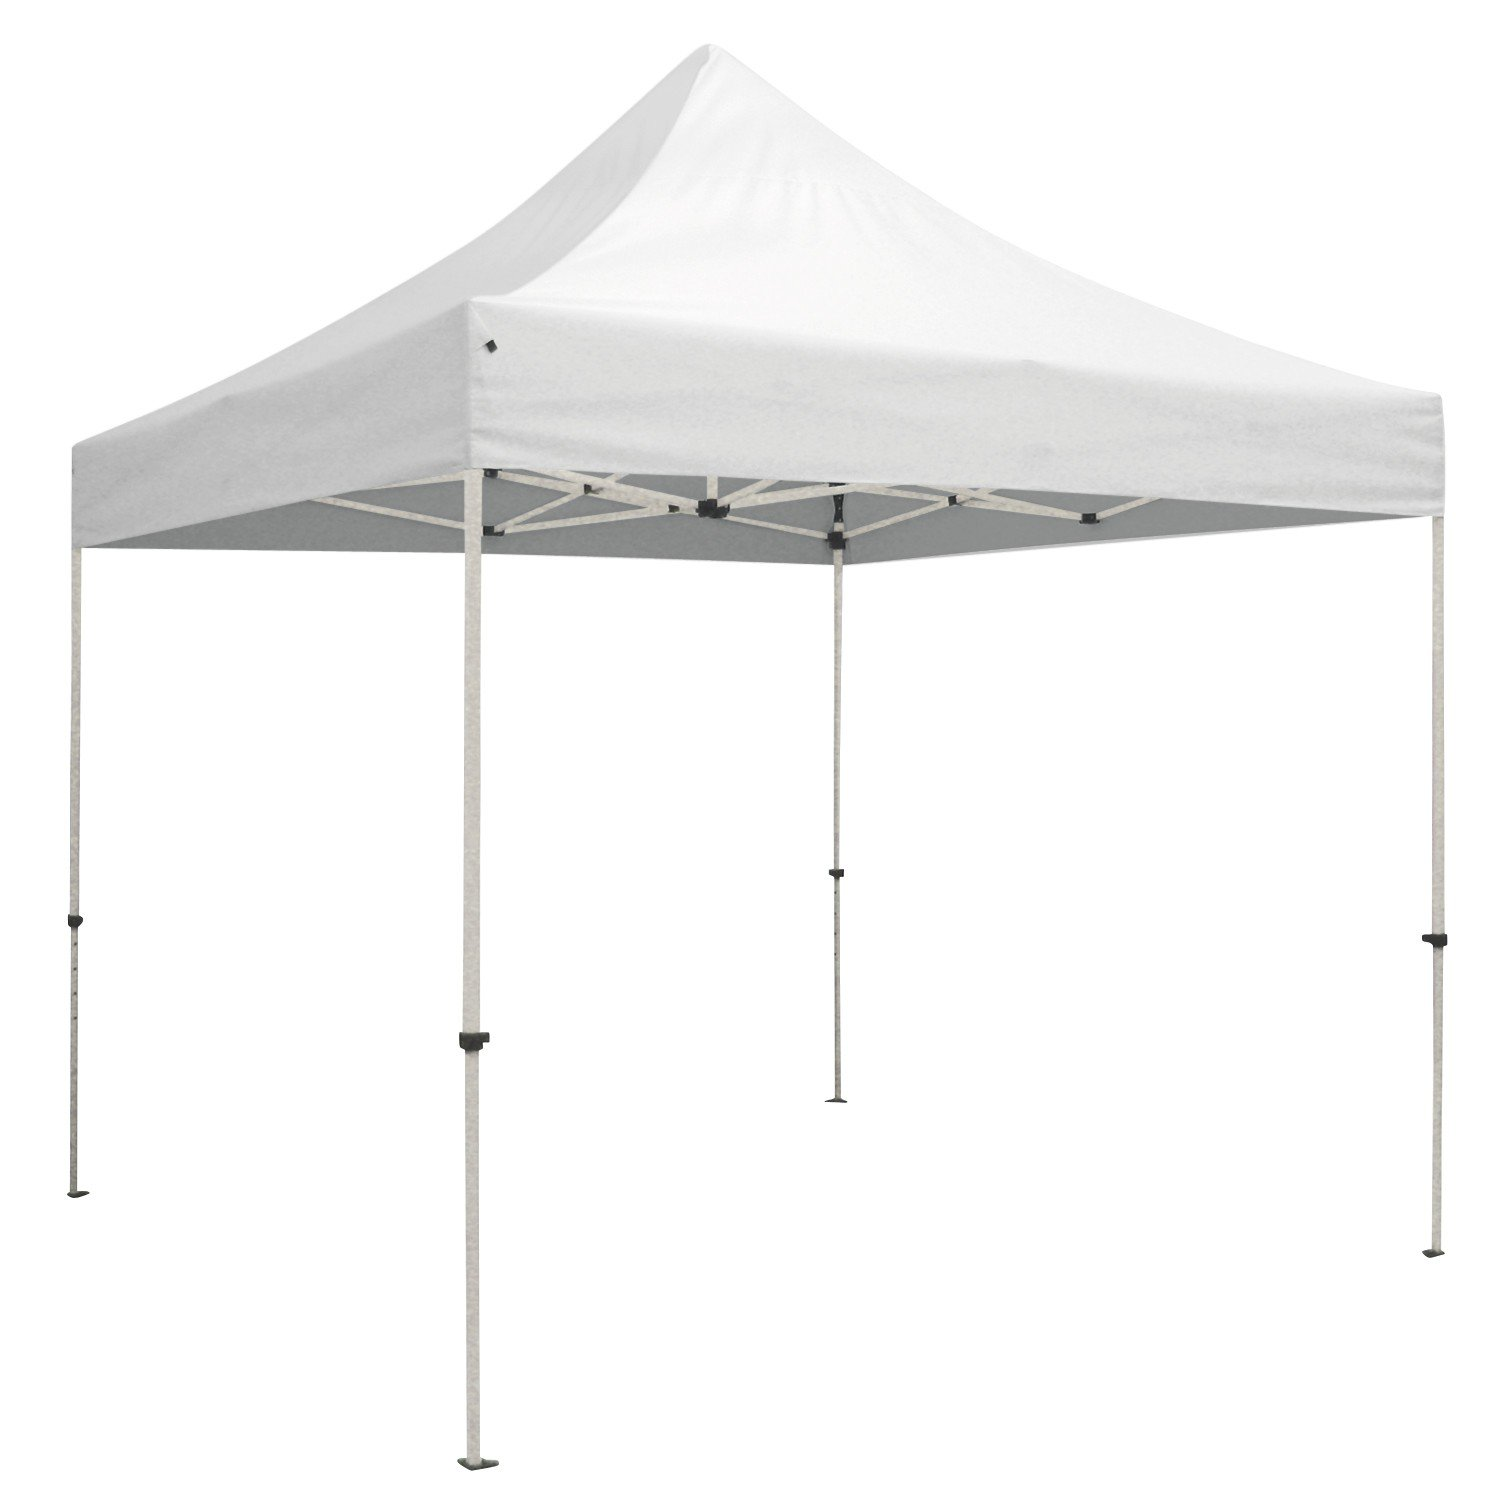 10ft x 10ft Canopy (Blank)  sc 1 st  LOGO Expressions & 10ft x 10ft Canopy (Blank) | C10X10B